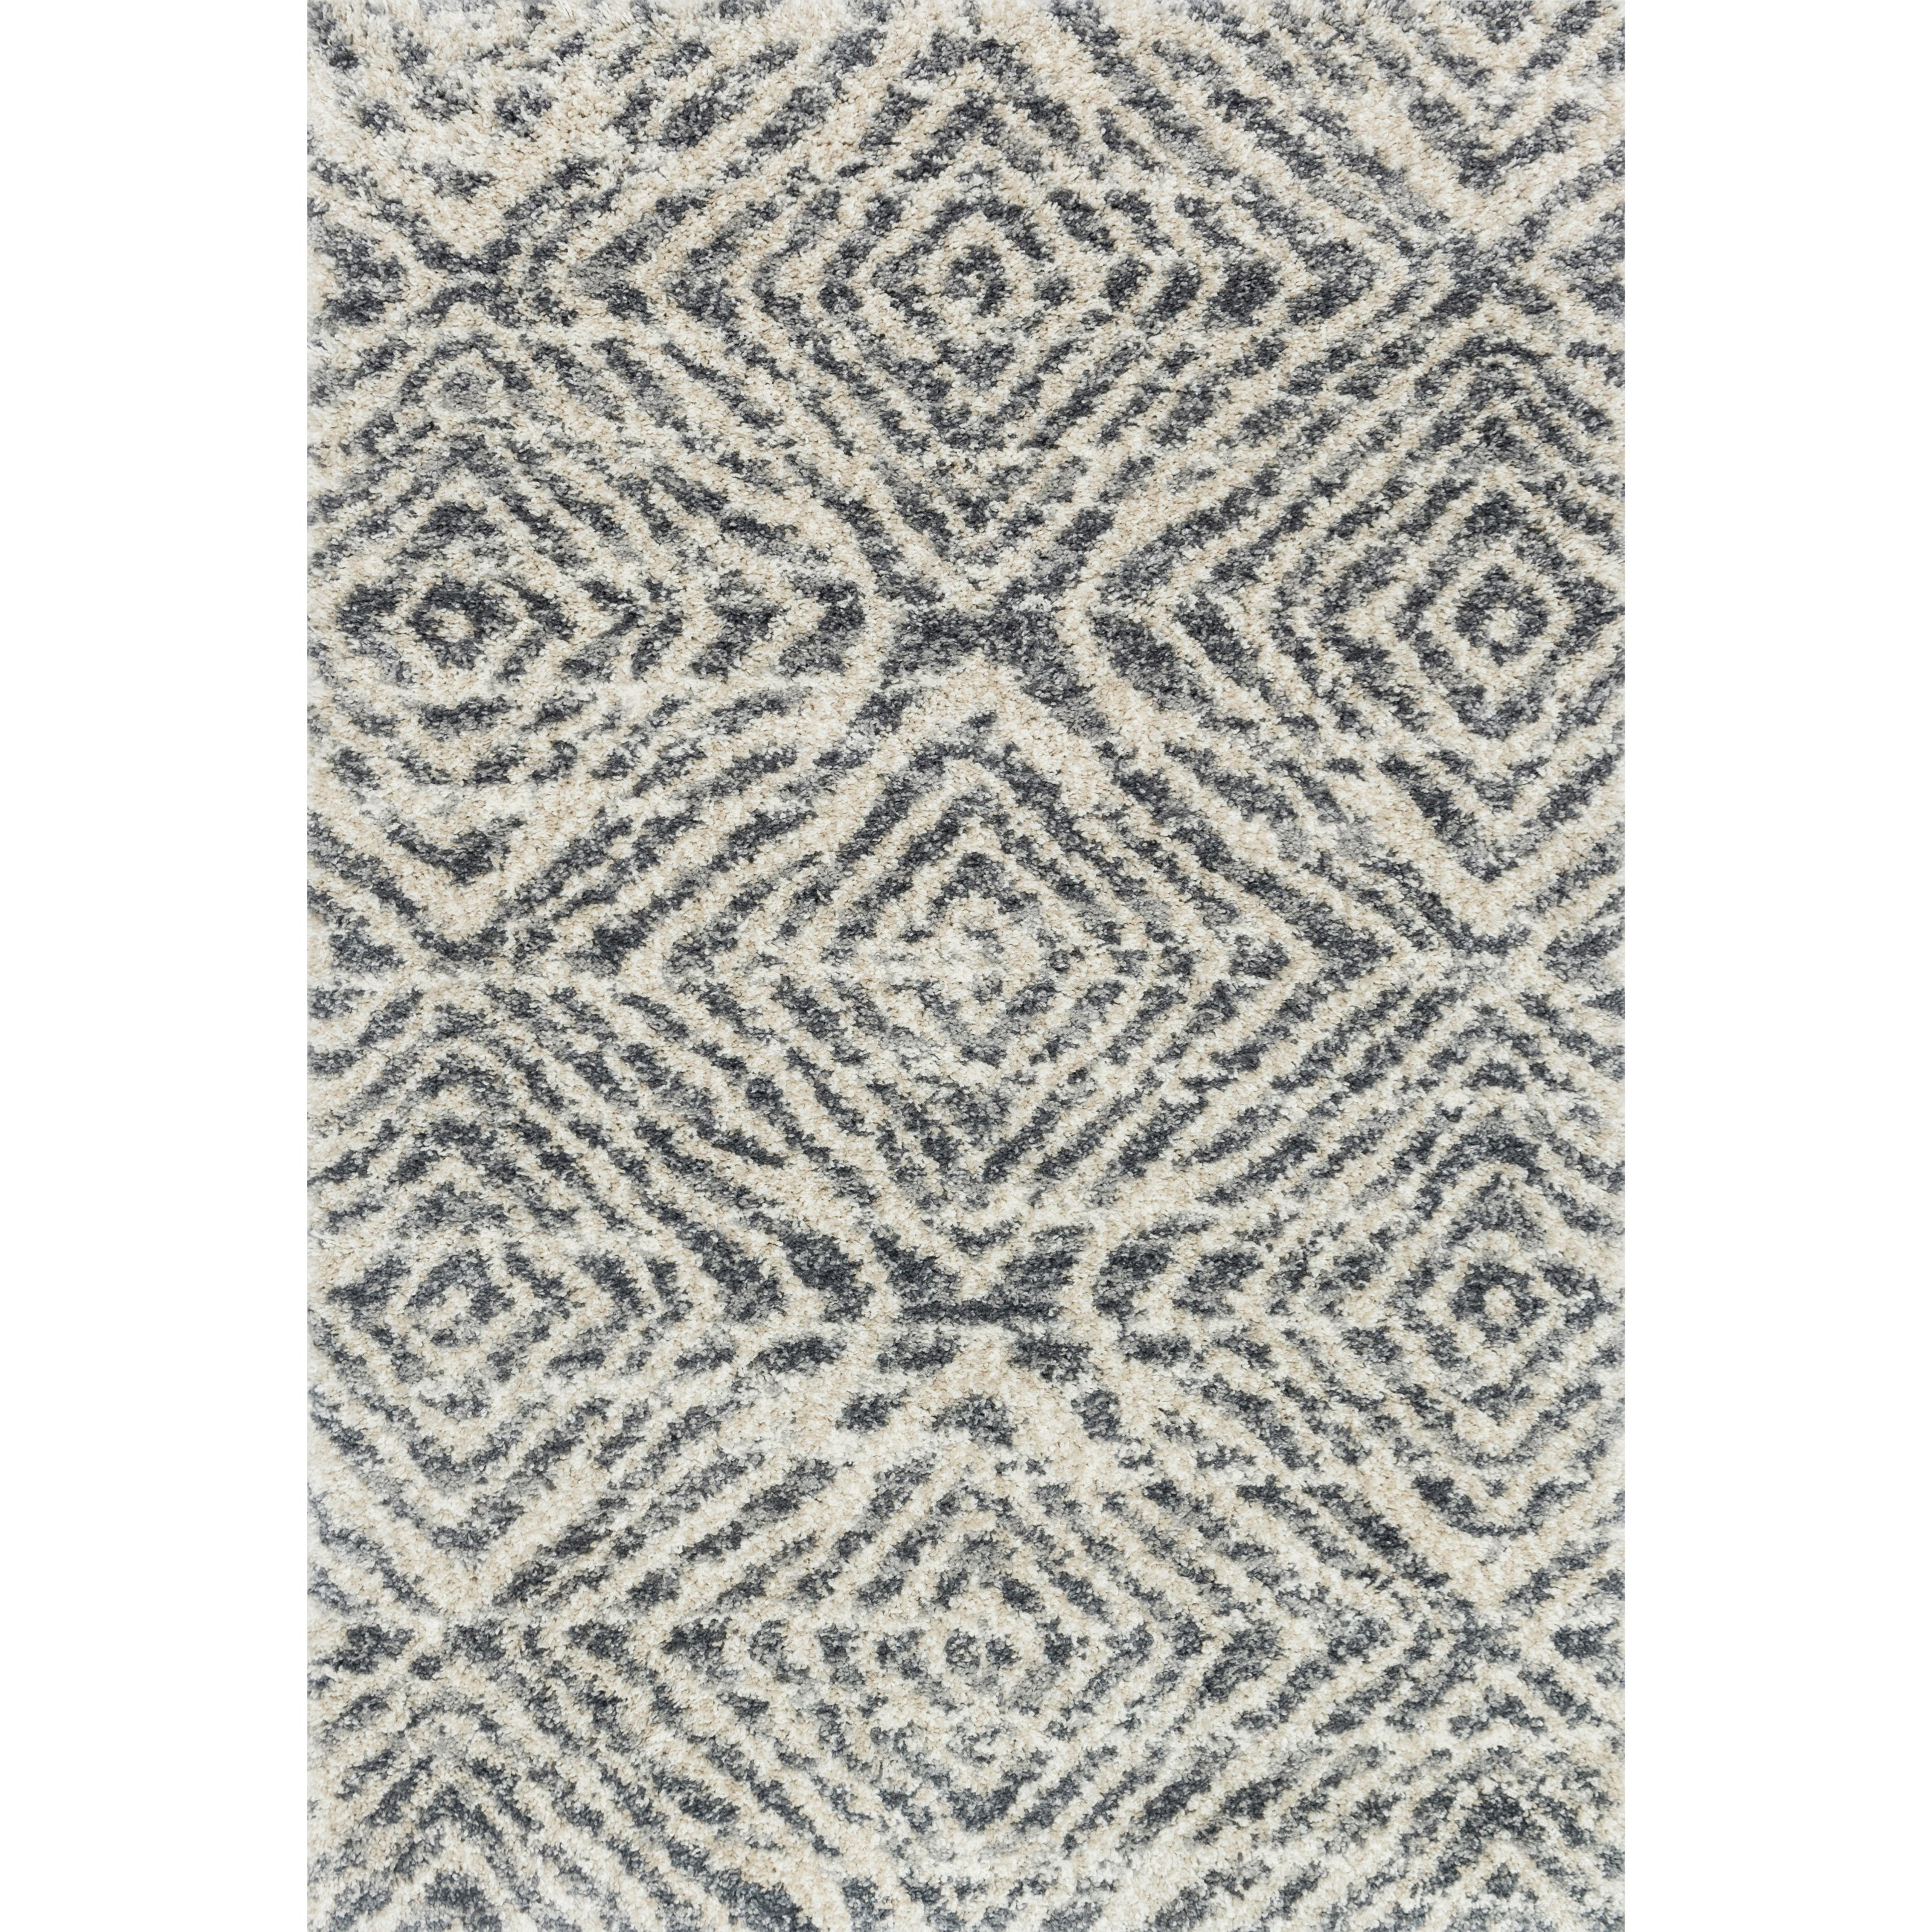 """Quincy 2'3"""" x 12' Graphite / Sand Rug by Loloi Rugs at Pedigo Furniture"""